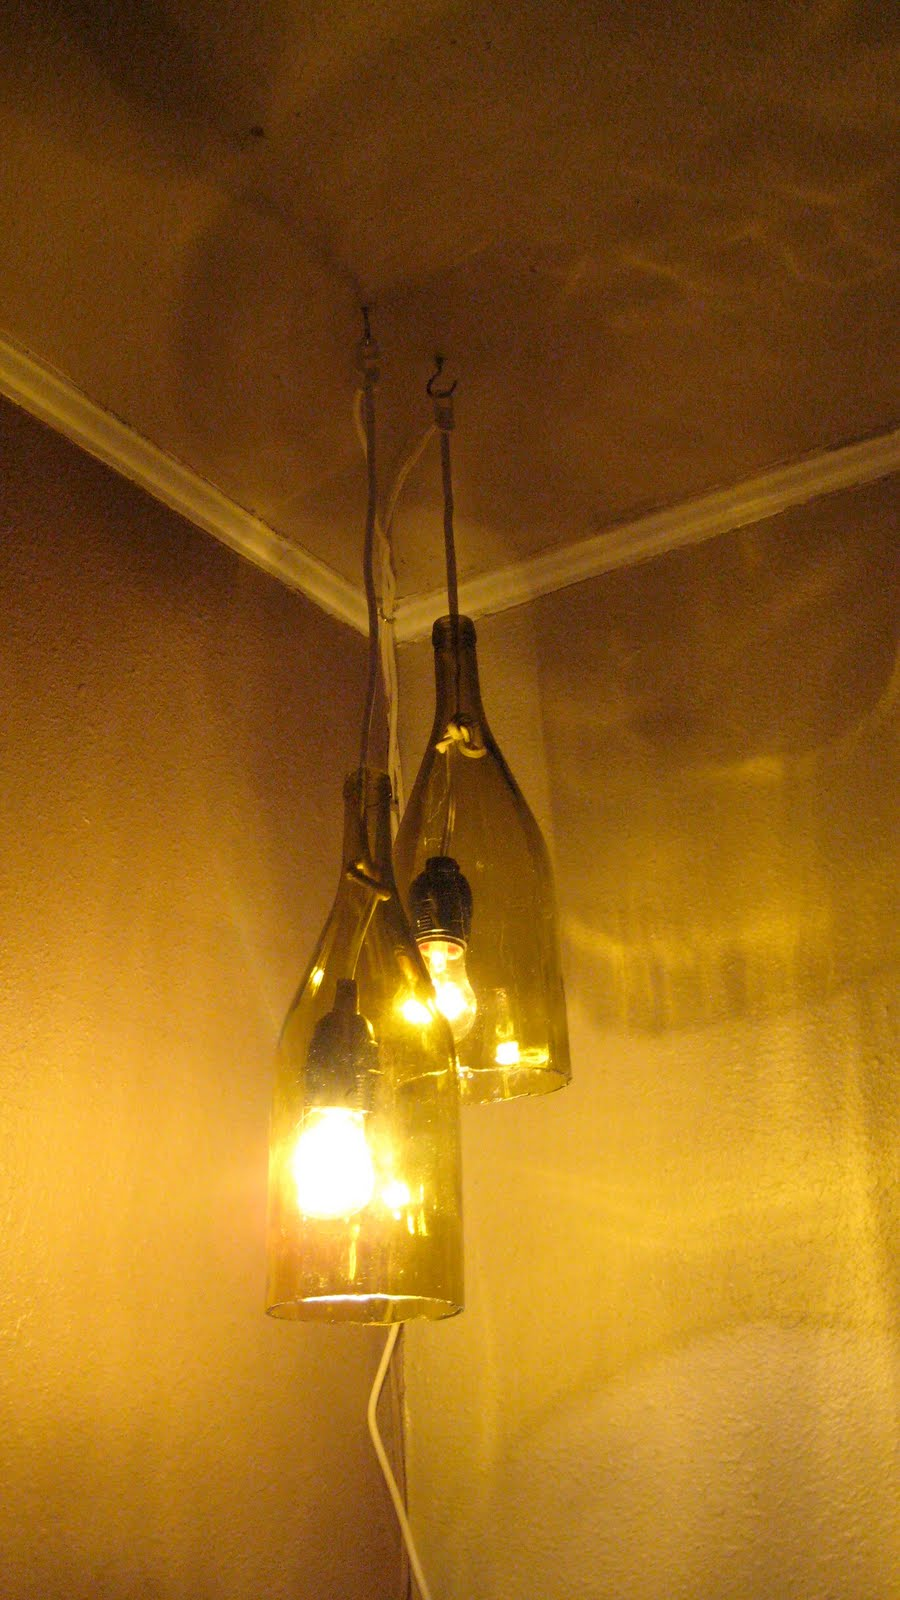 Remodelaholic | How to Make a Glass Wine Bottle Pendant ...